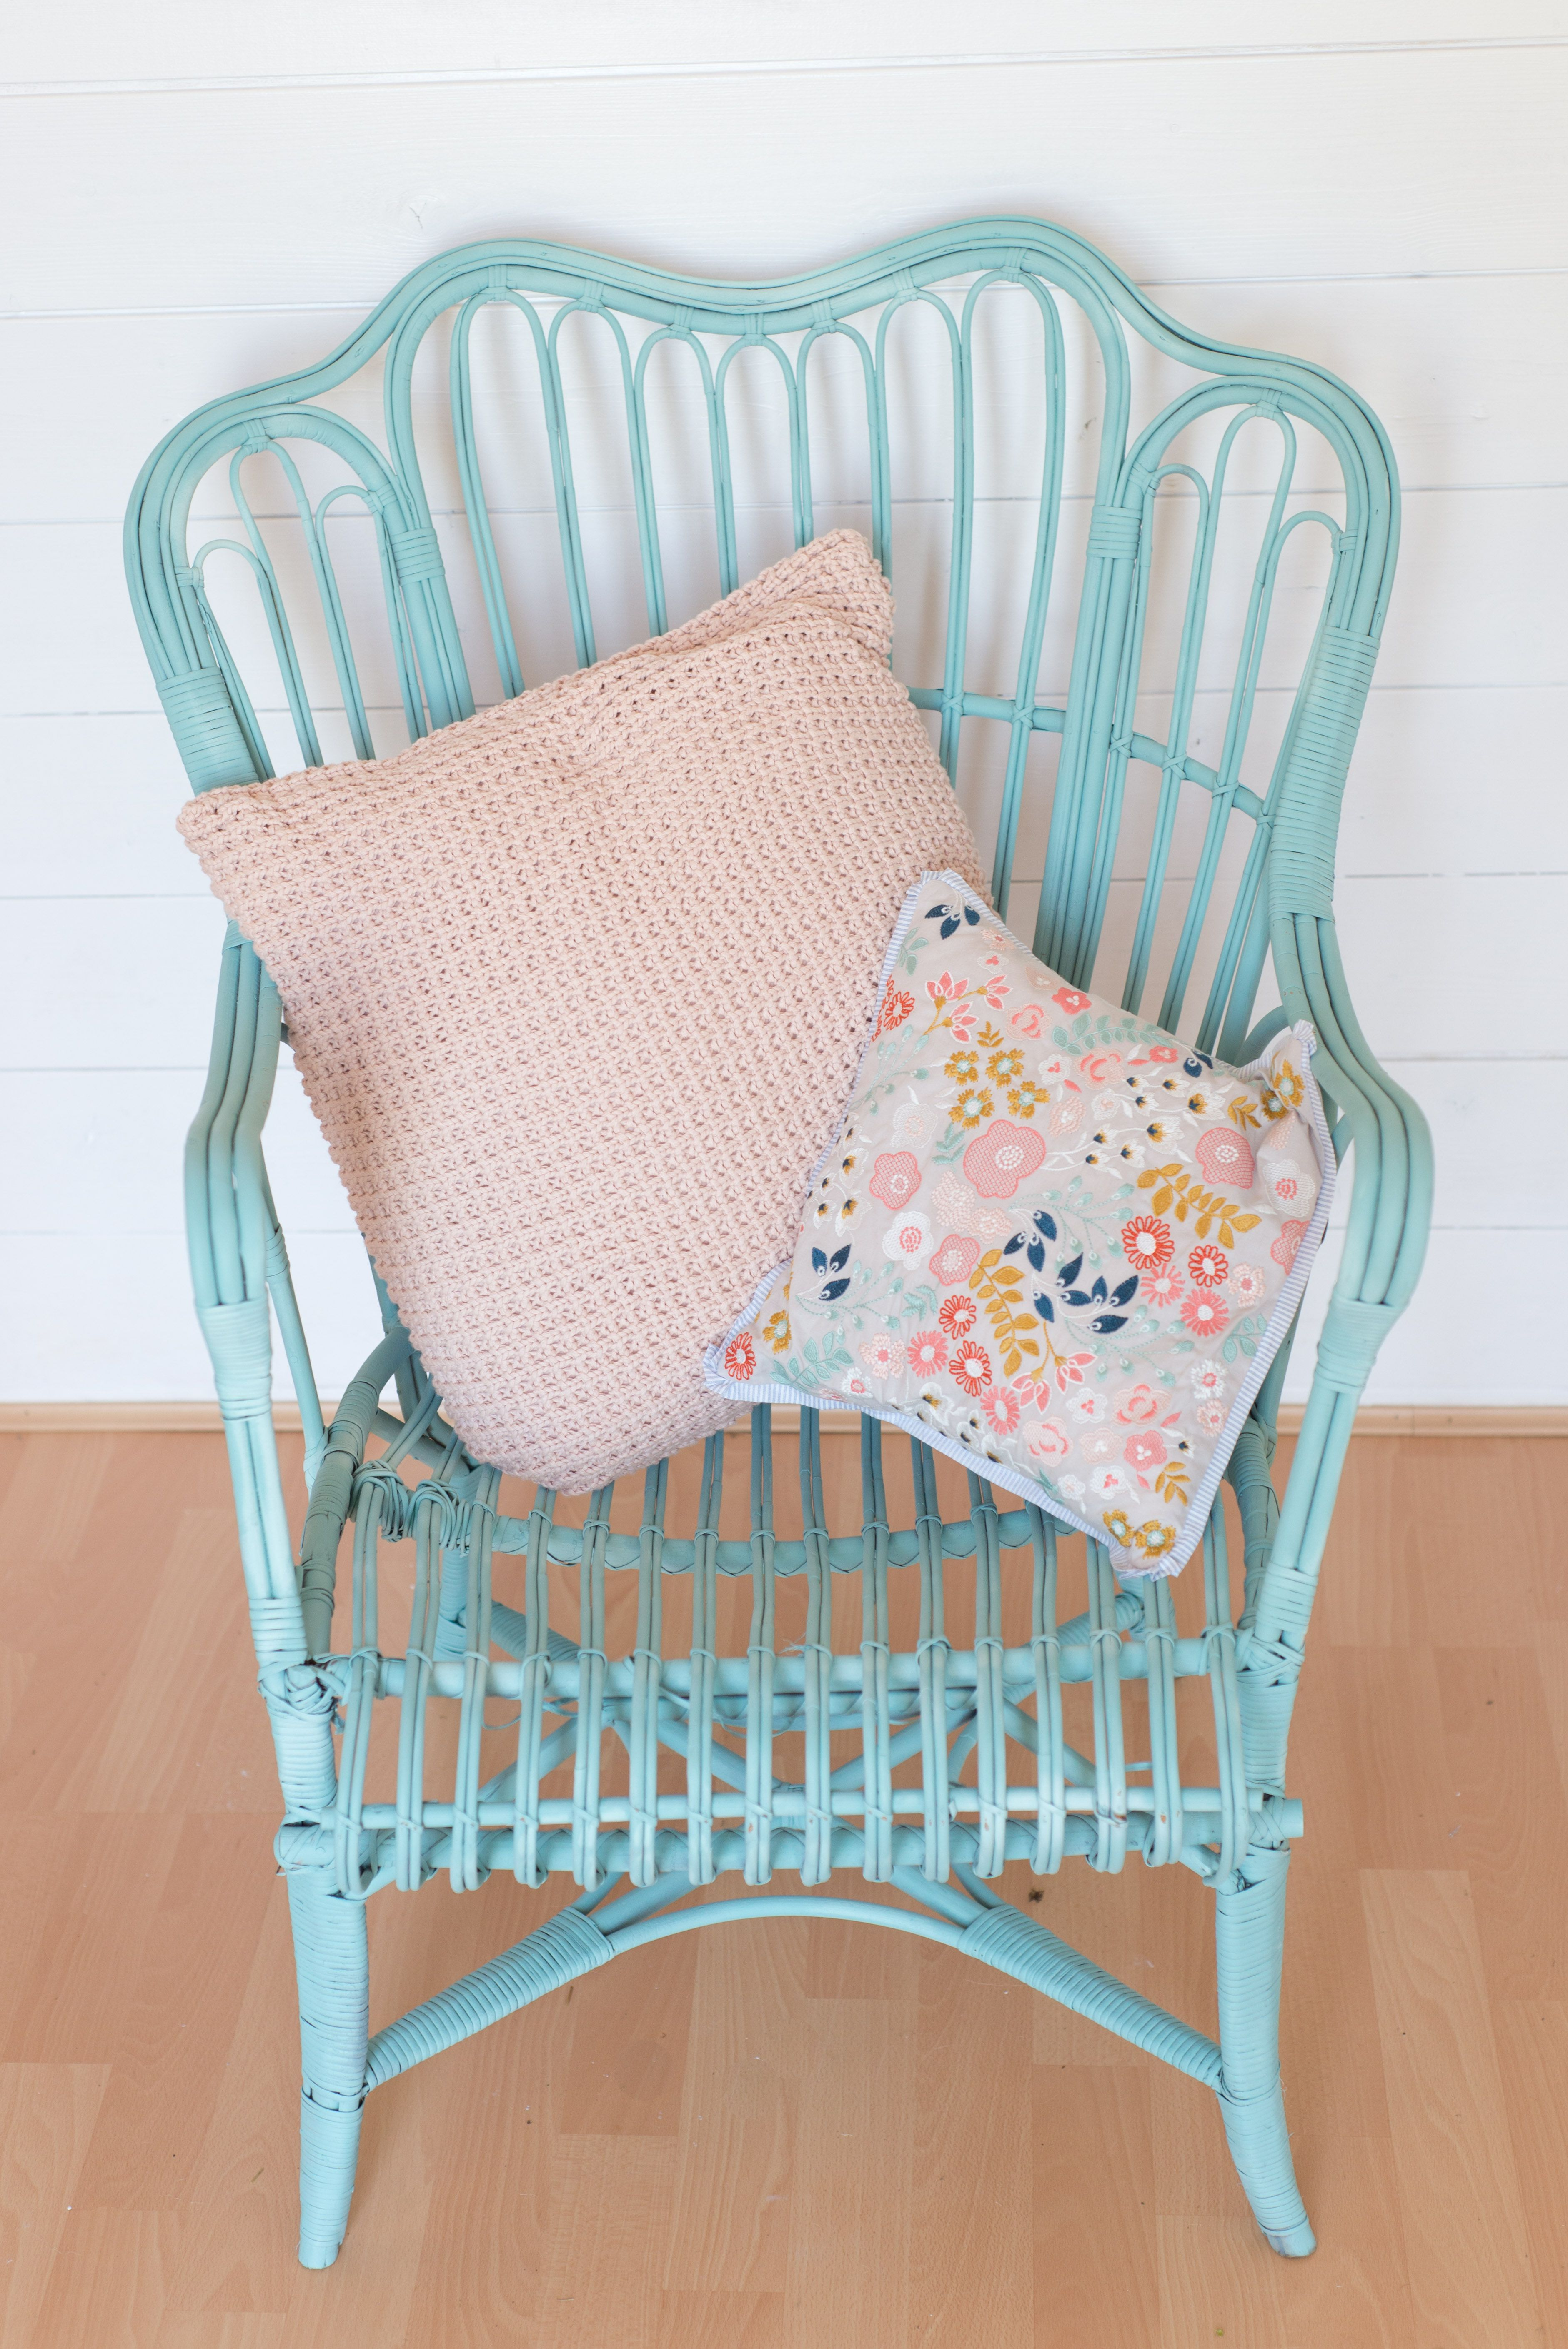 5 wicker chair makeover with spray chalk paint | Wicker ...